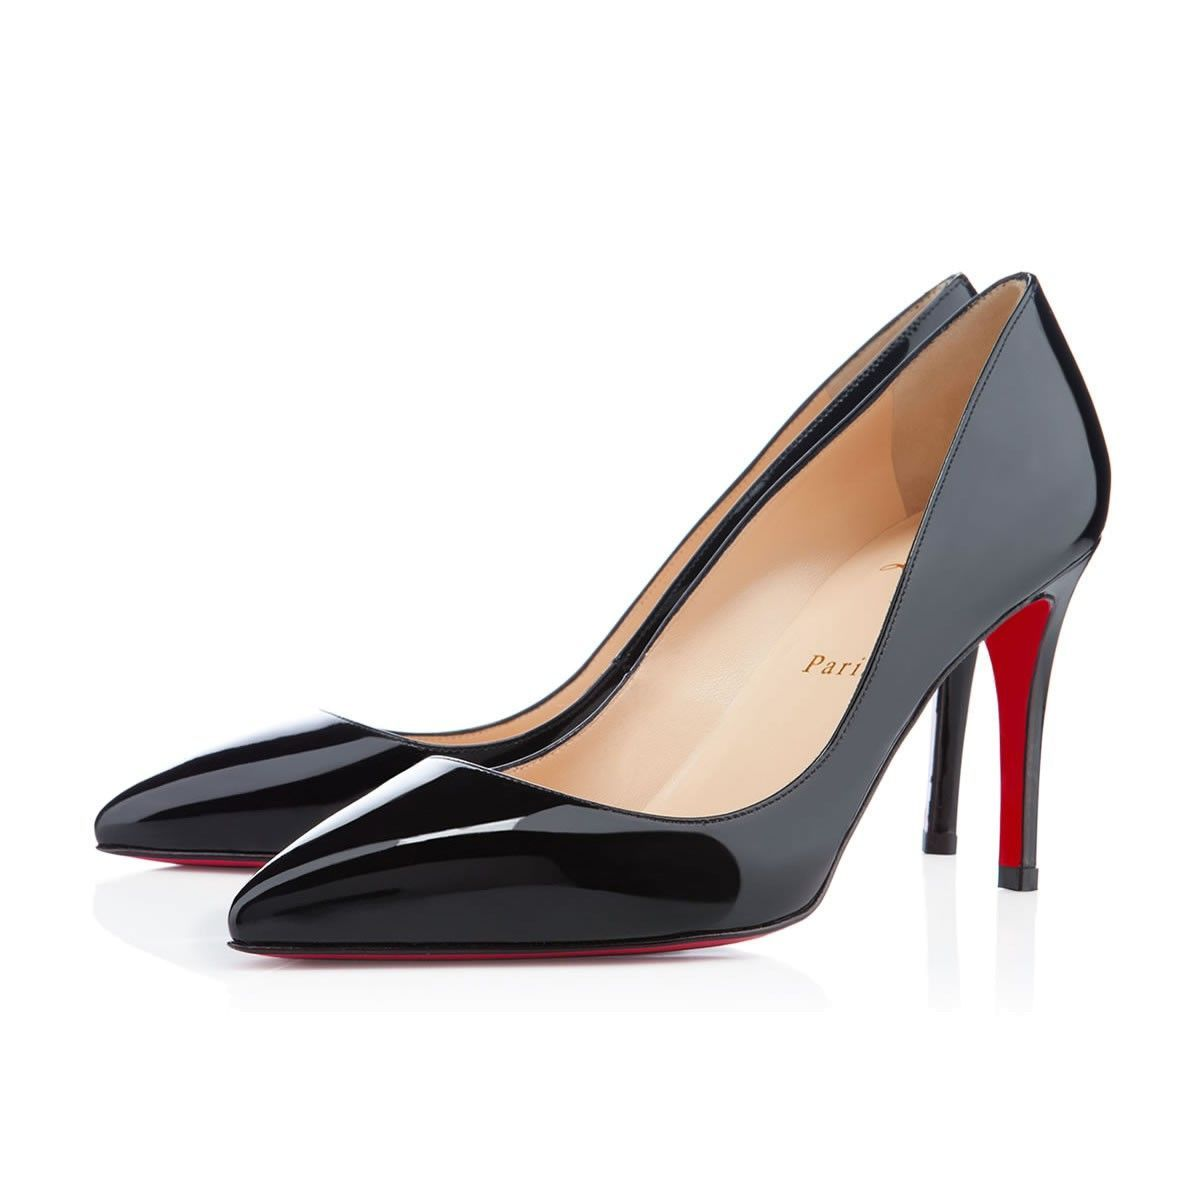 6d750ef8668 Christian Louboutin United States Official Online Boutique - Pigalle patent  85 Black Patent Leather available online. Discover more Women Shoes by  Christian ...